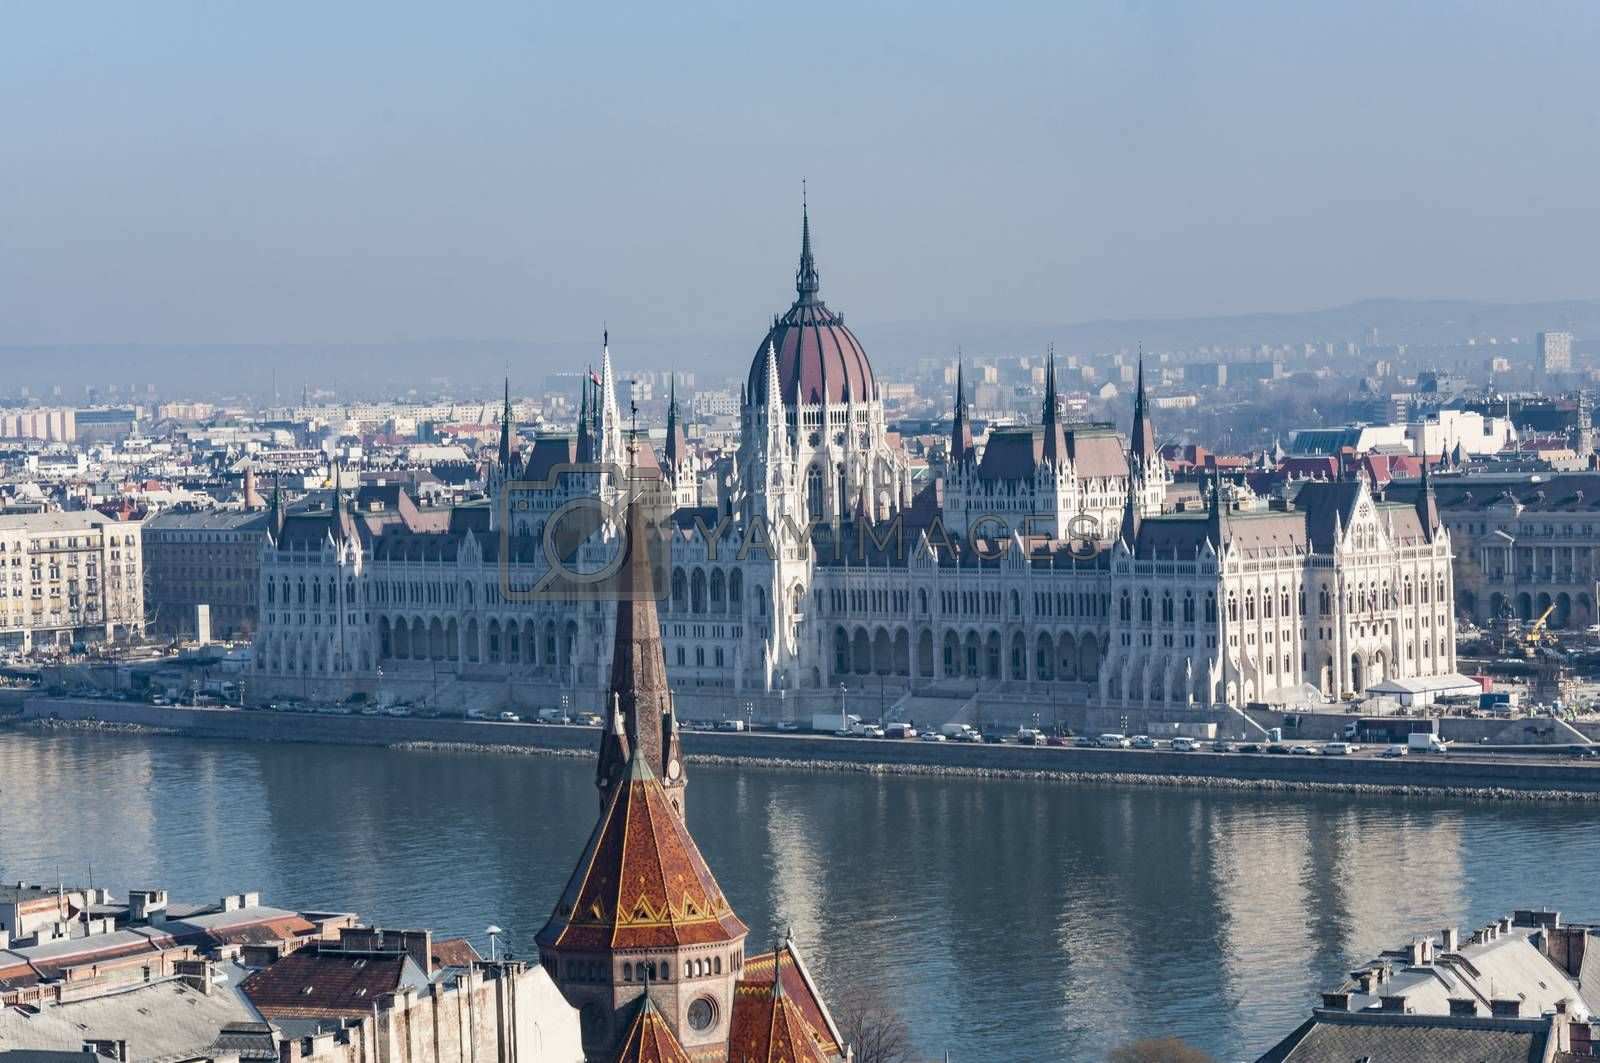 panoramic view of the Danube River and the city of Budapest, Hungary